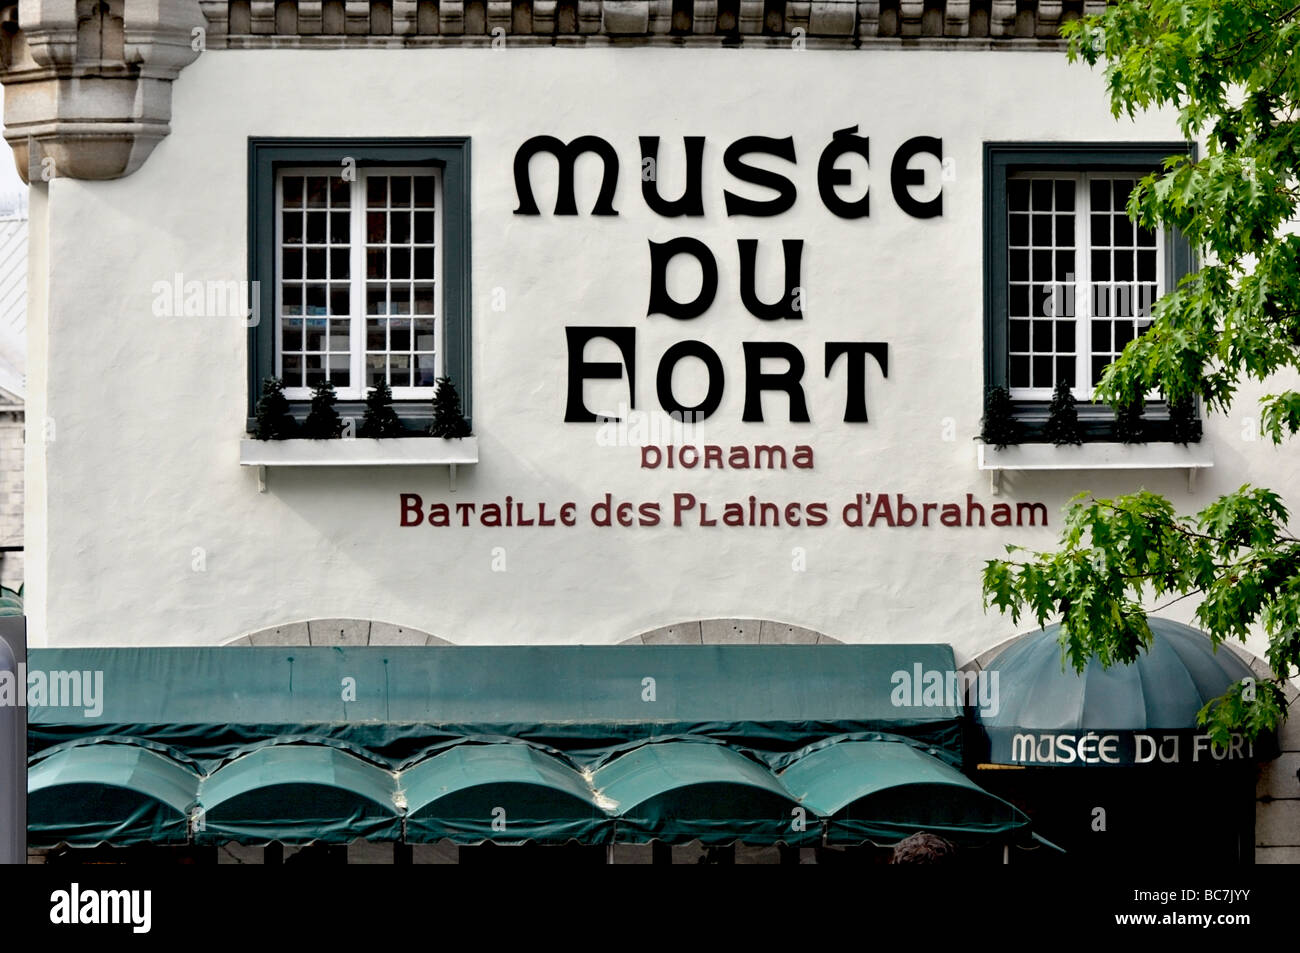 Museé du Fort -  Presents sound and light shows of the six military sieges that shaped the history of Québec - Stock Image